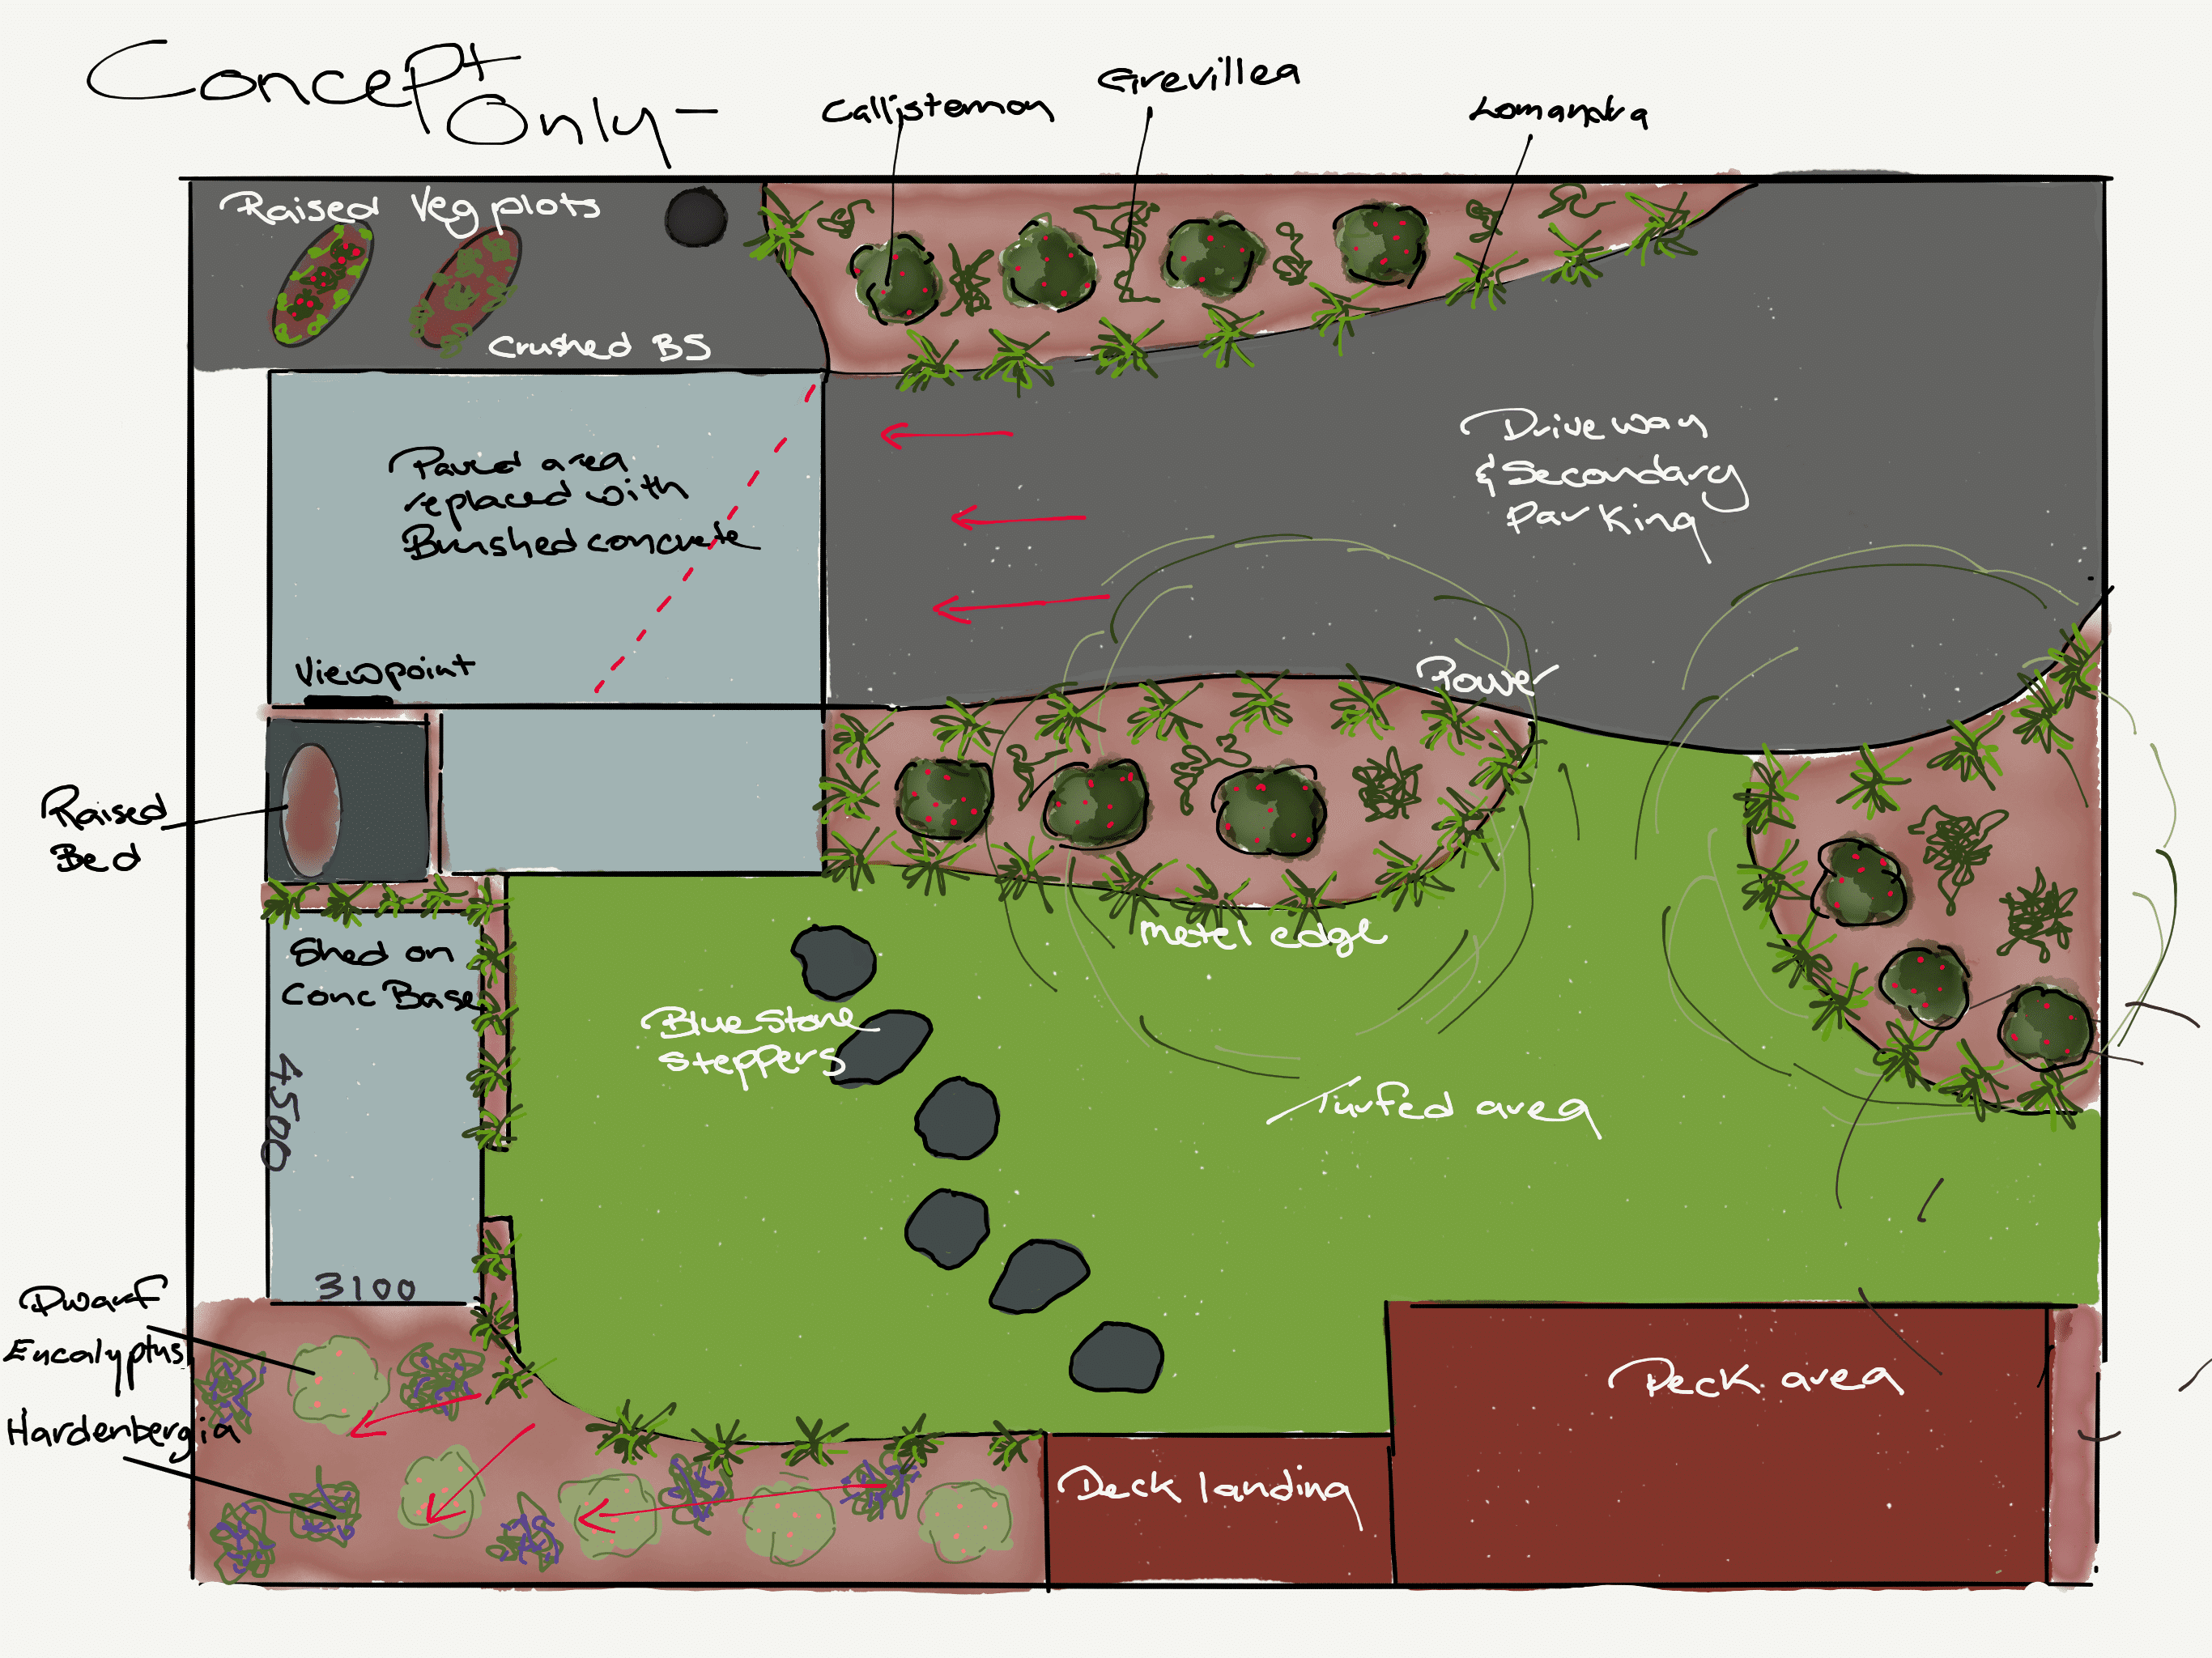 Gardengigs-Project-Concepts-and-Designs